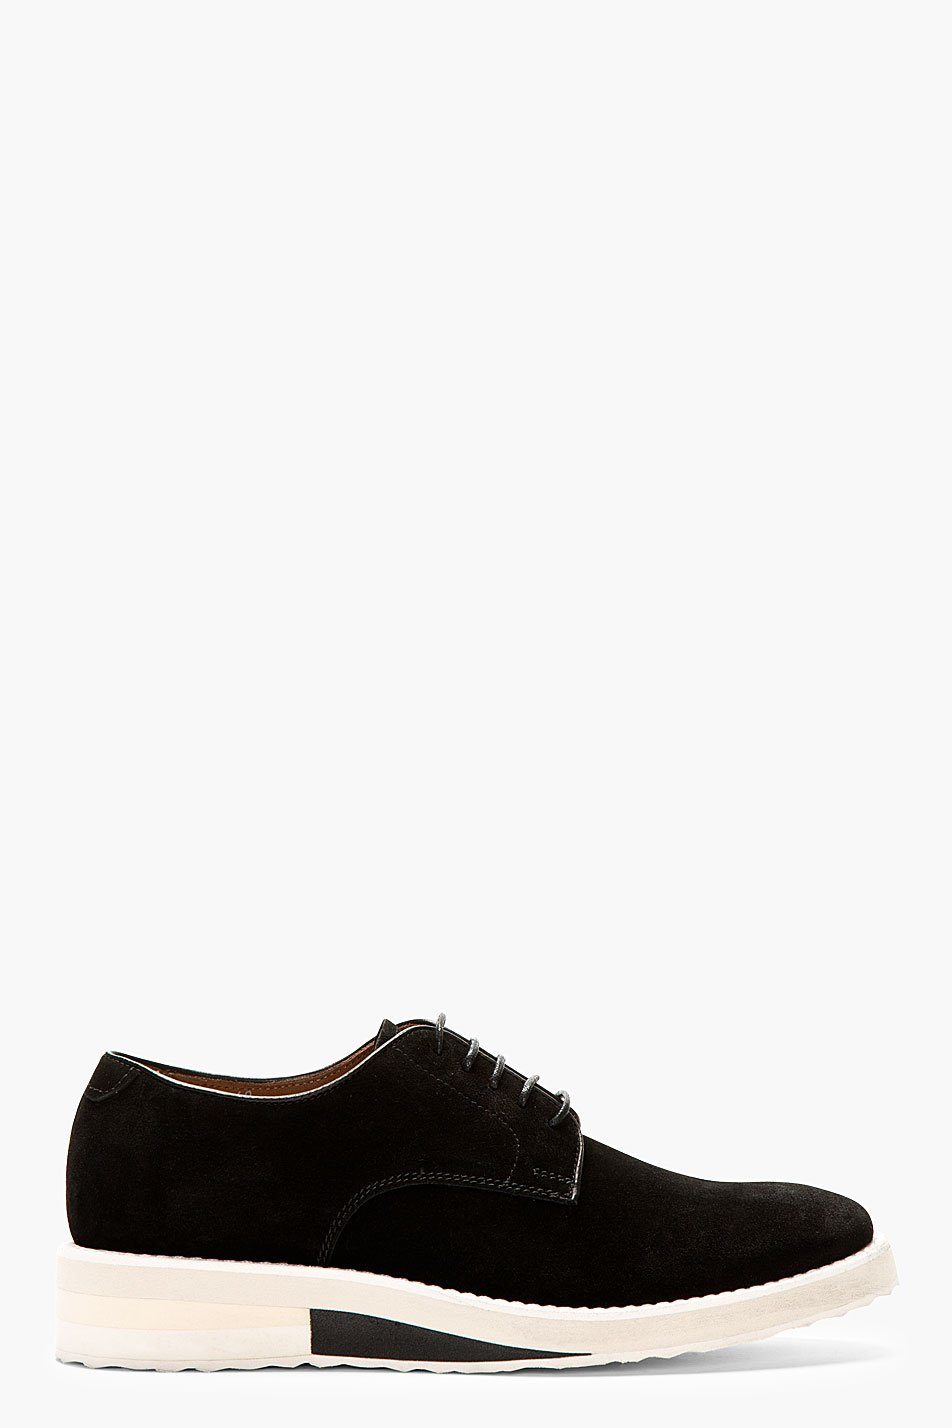 Acne studios black suede derbys